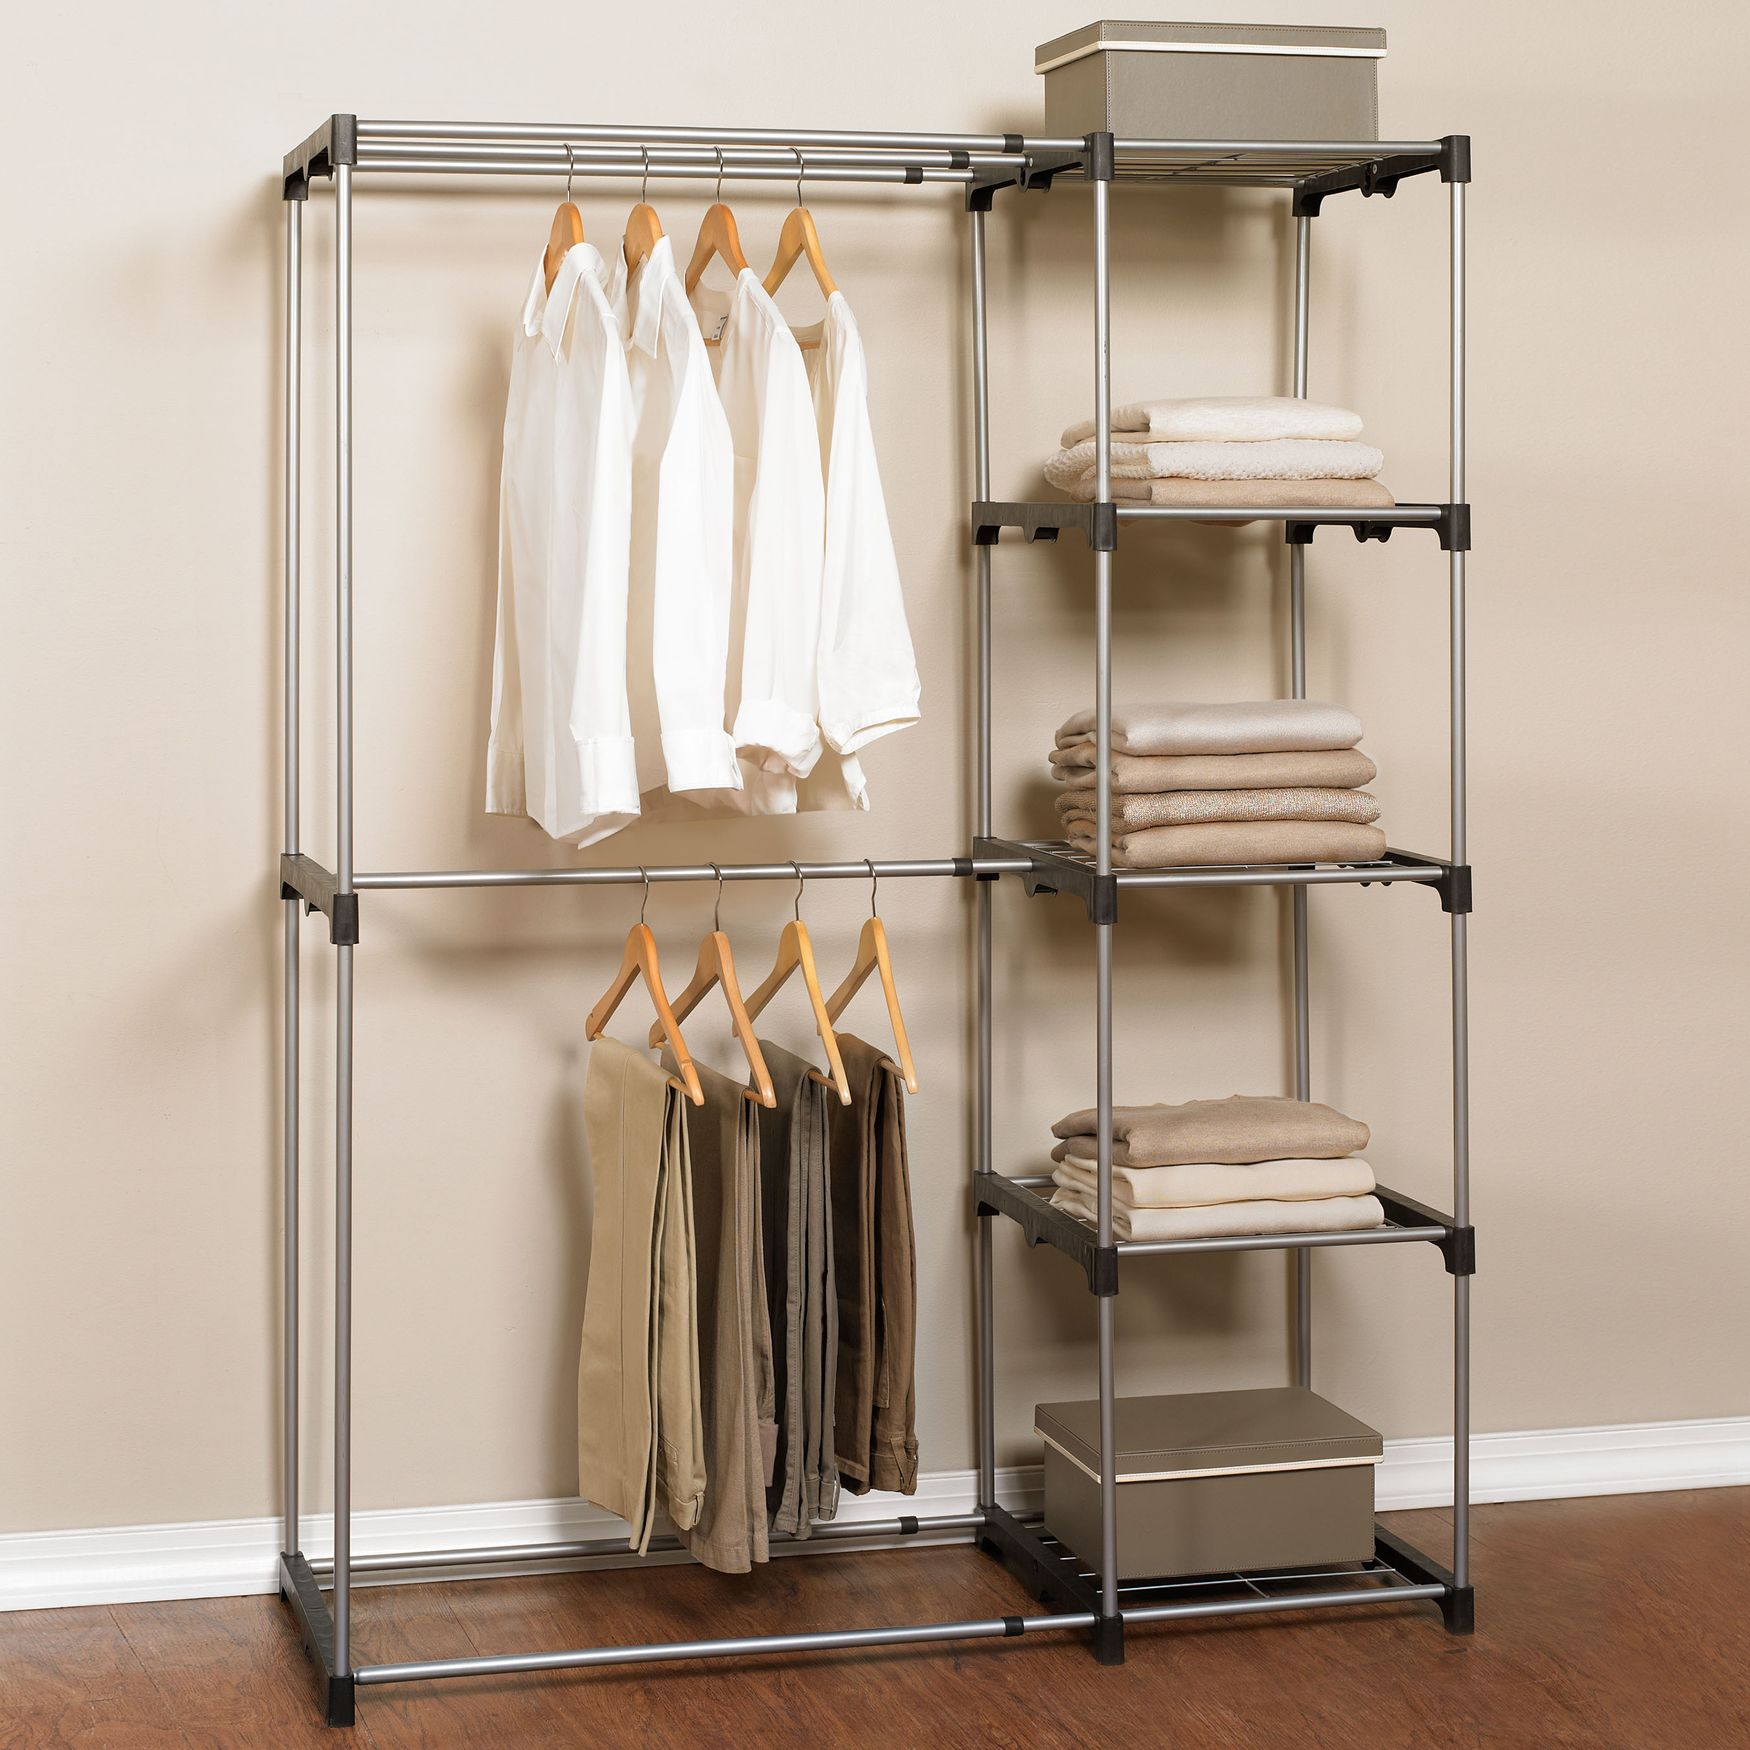 Our Garment Rack With Shelves Instantly Creates Much